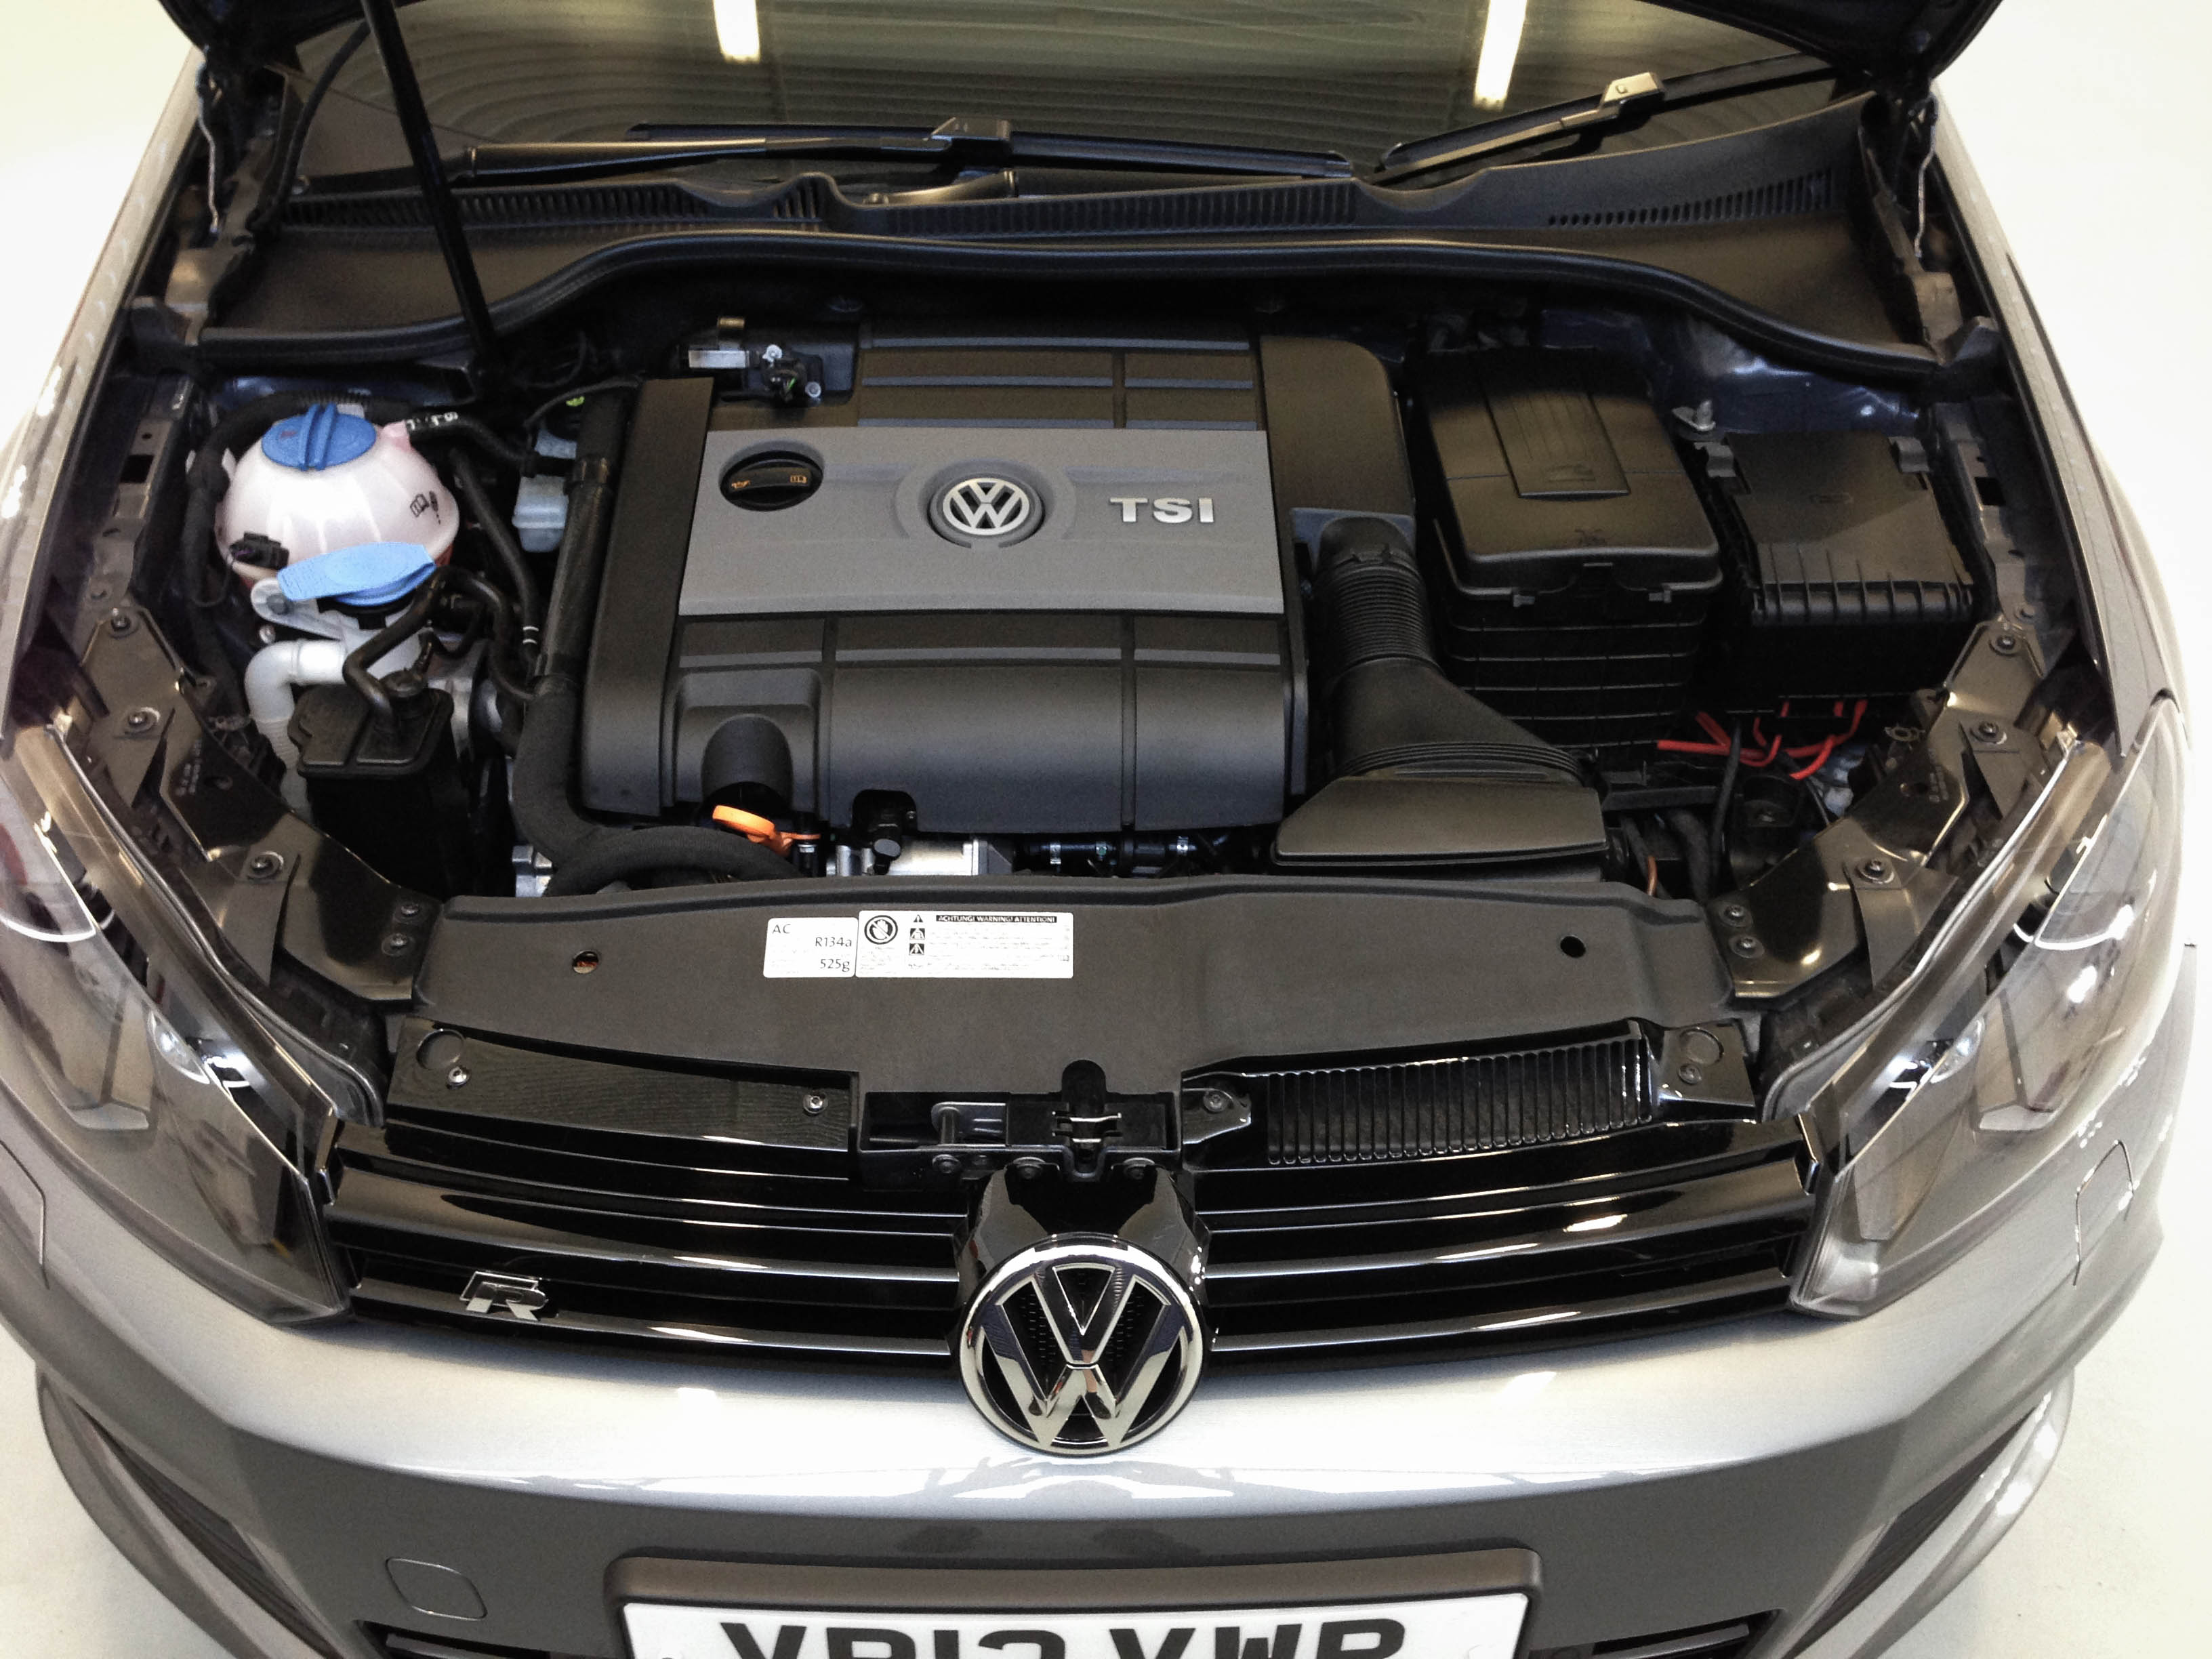 VW-Golf-R-engine